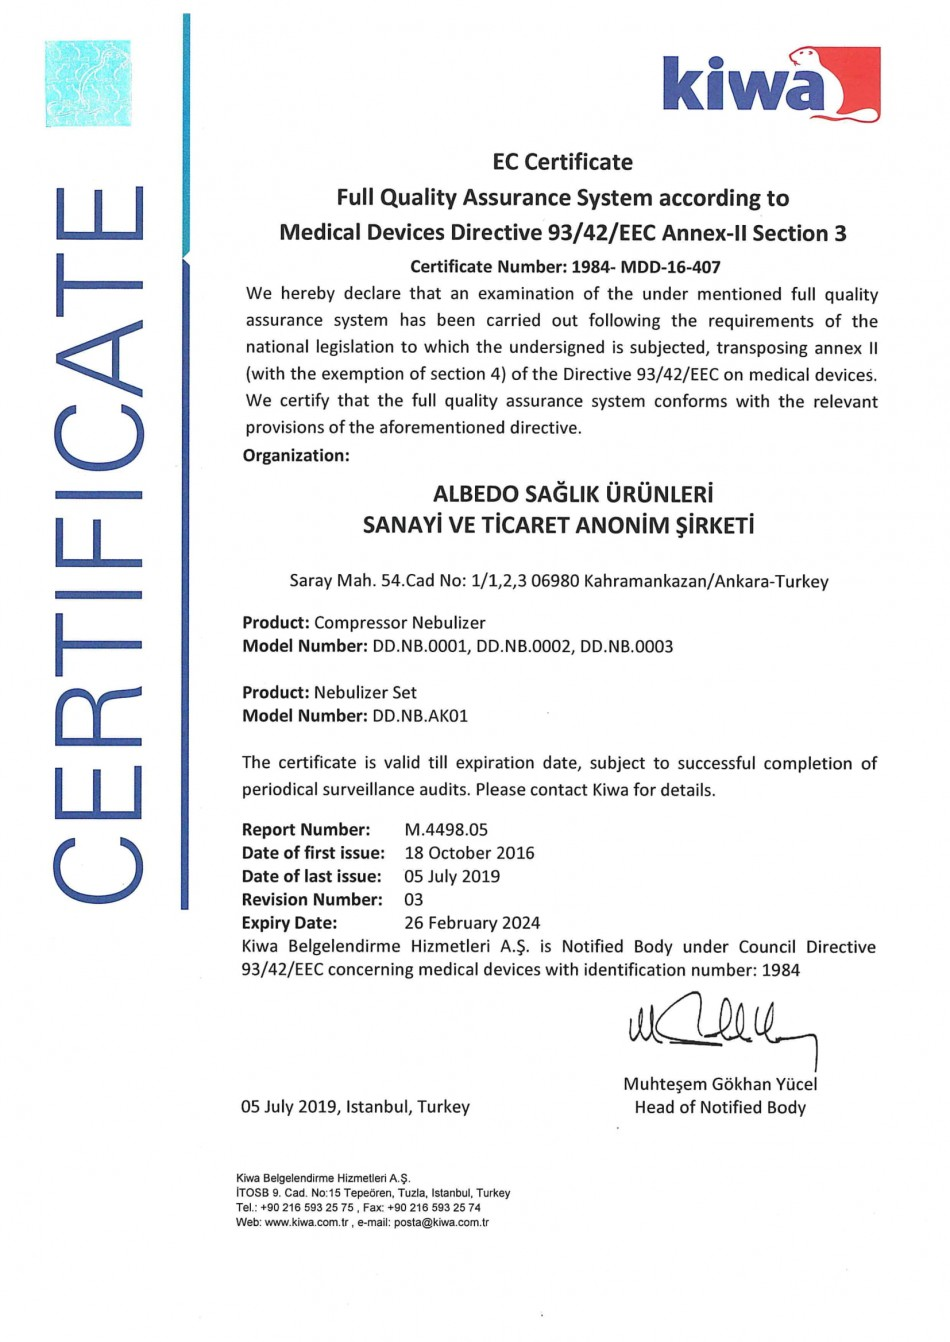 ALBEDO MEDICAL PRODUCTS - CERTIFICATES 93/42/EEC MDD - CE  Certificate